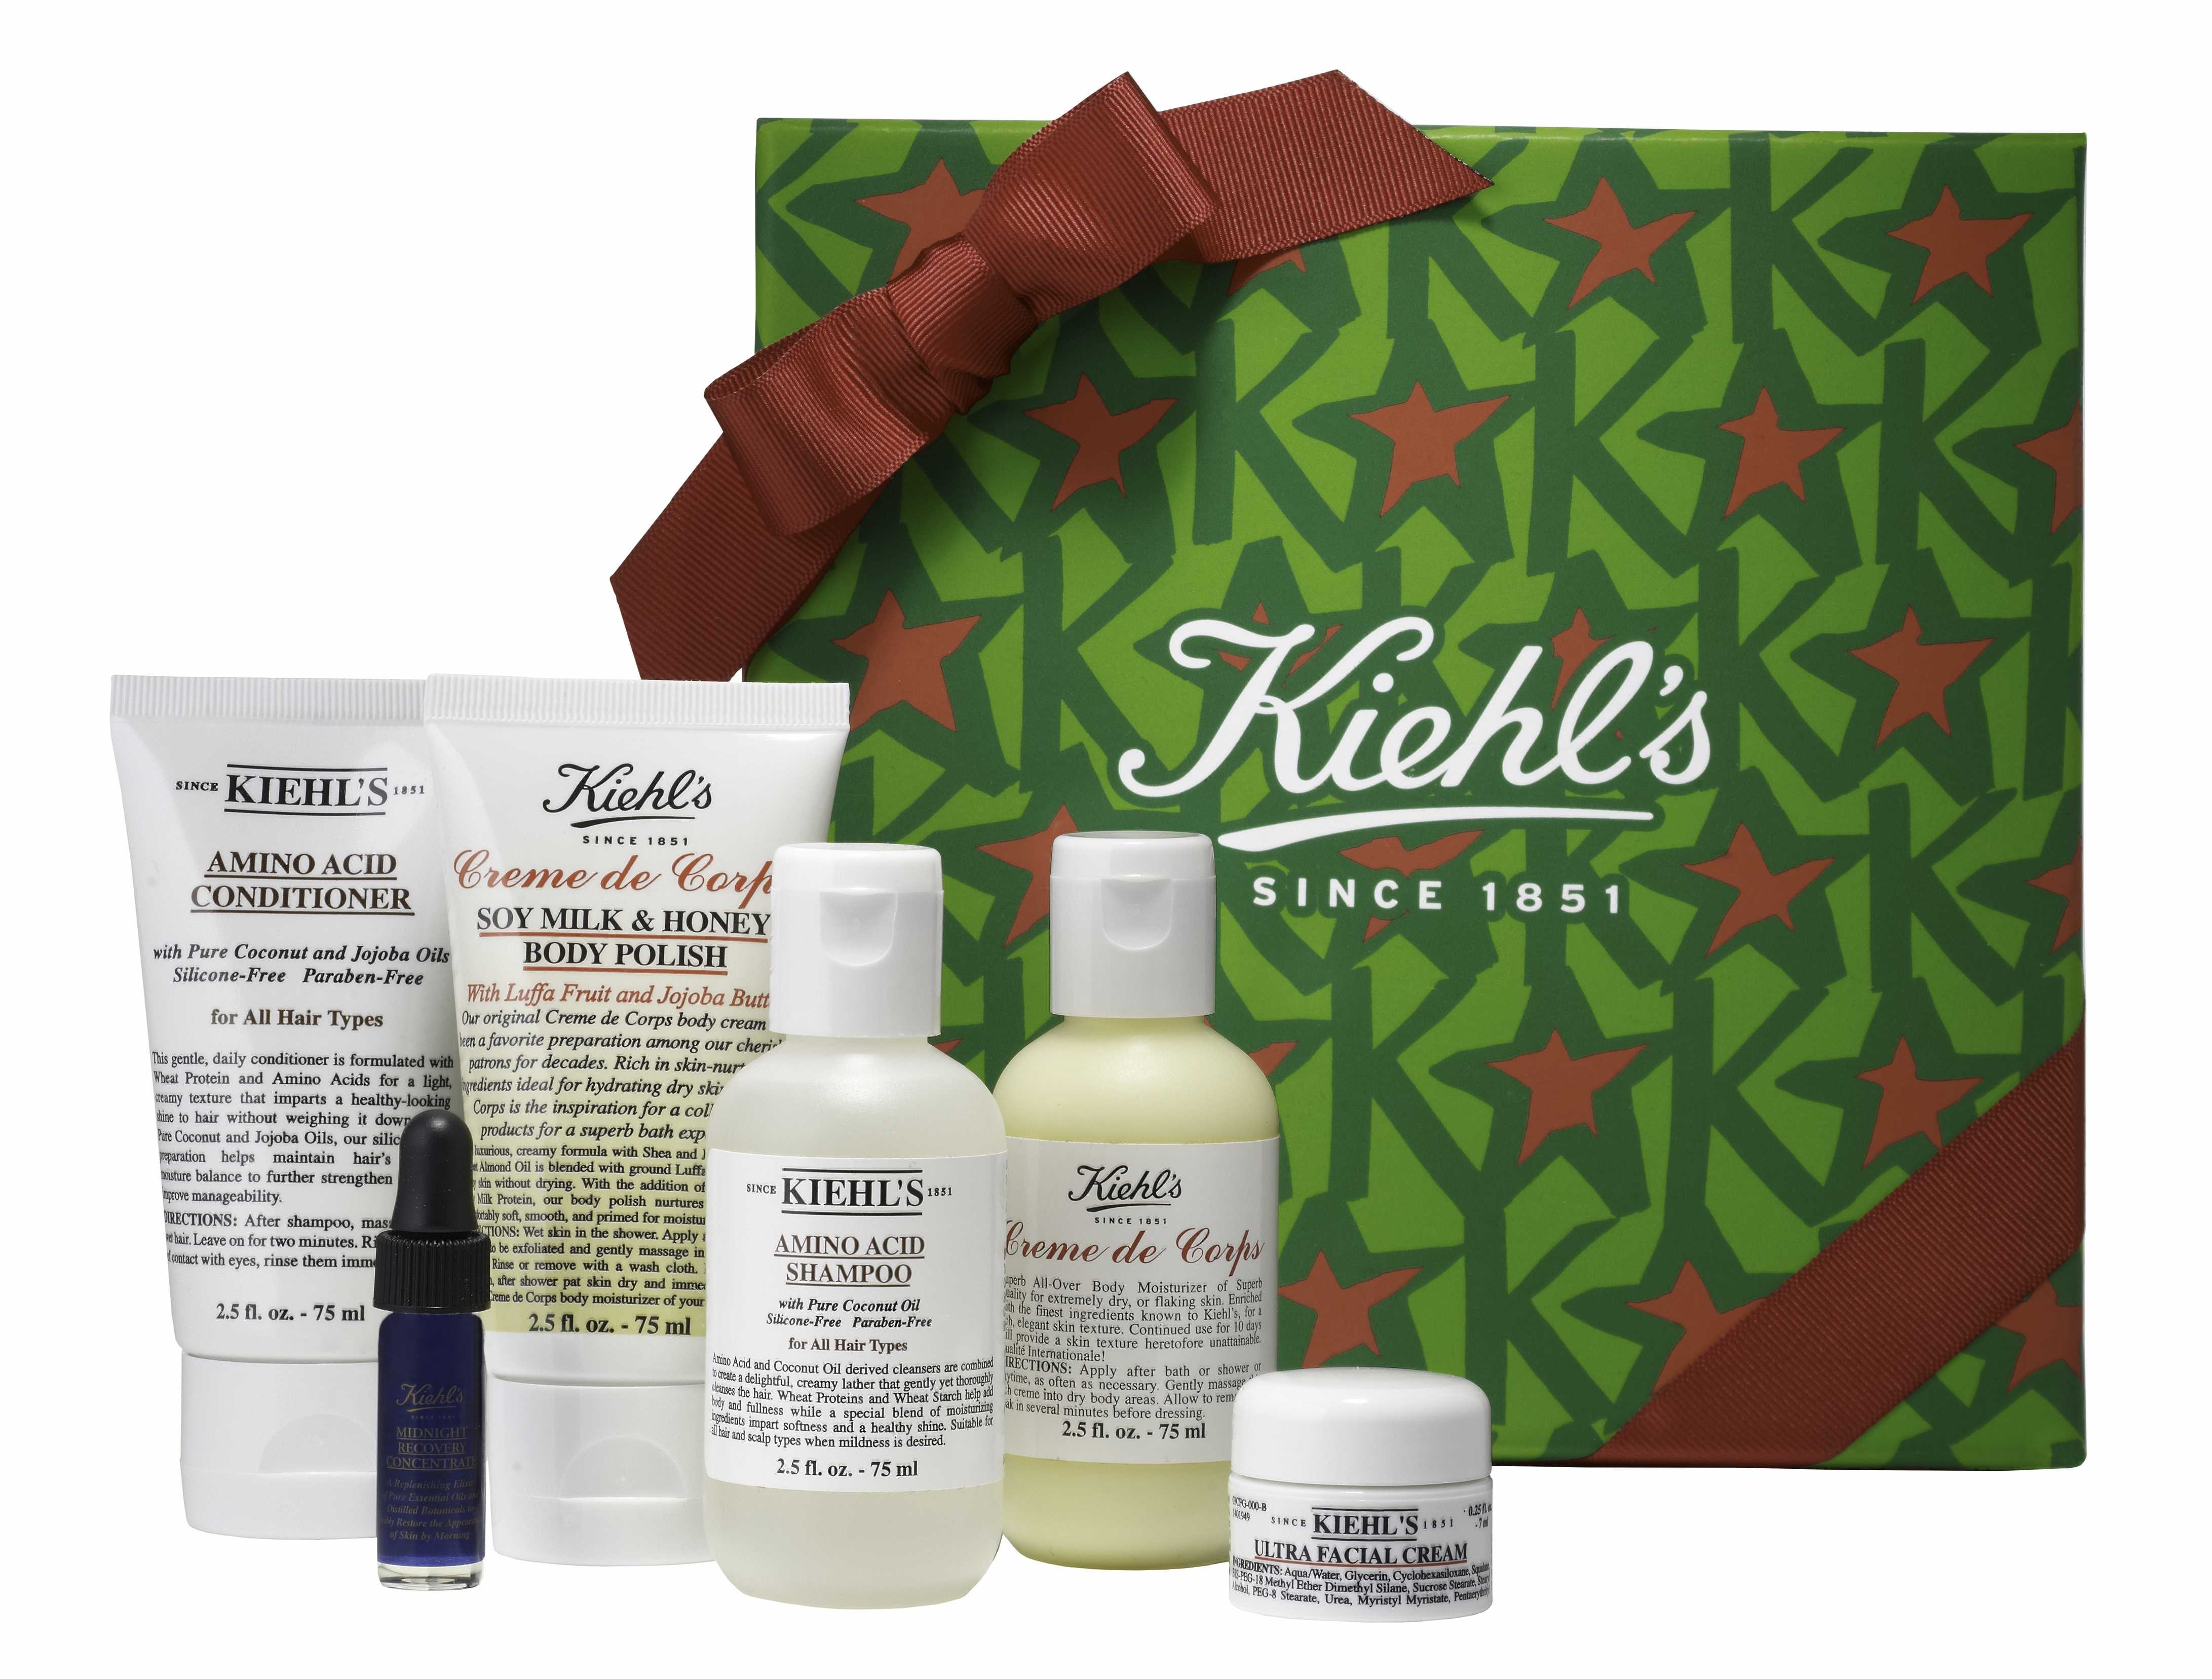 Kiehls Since 1851 Greatest Hits Collection Perfectlyclear Www Amino Acid Conditioner Fashion Lifestylewordpresscom